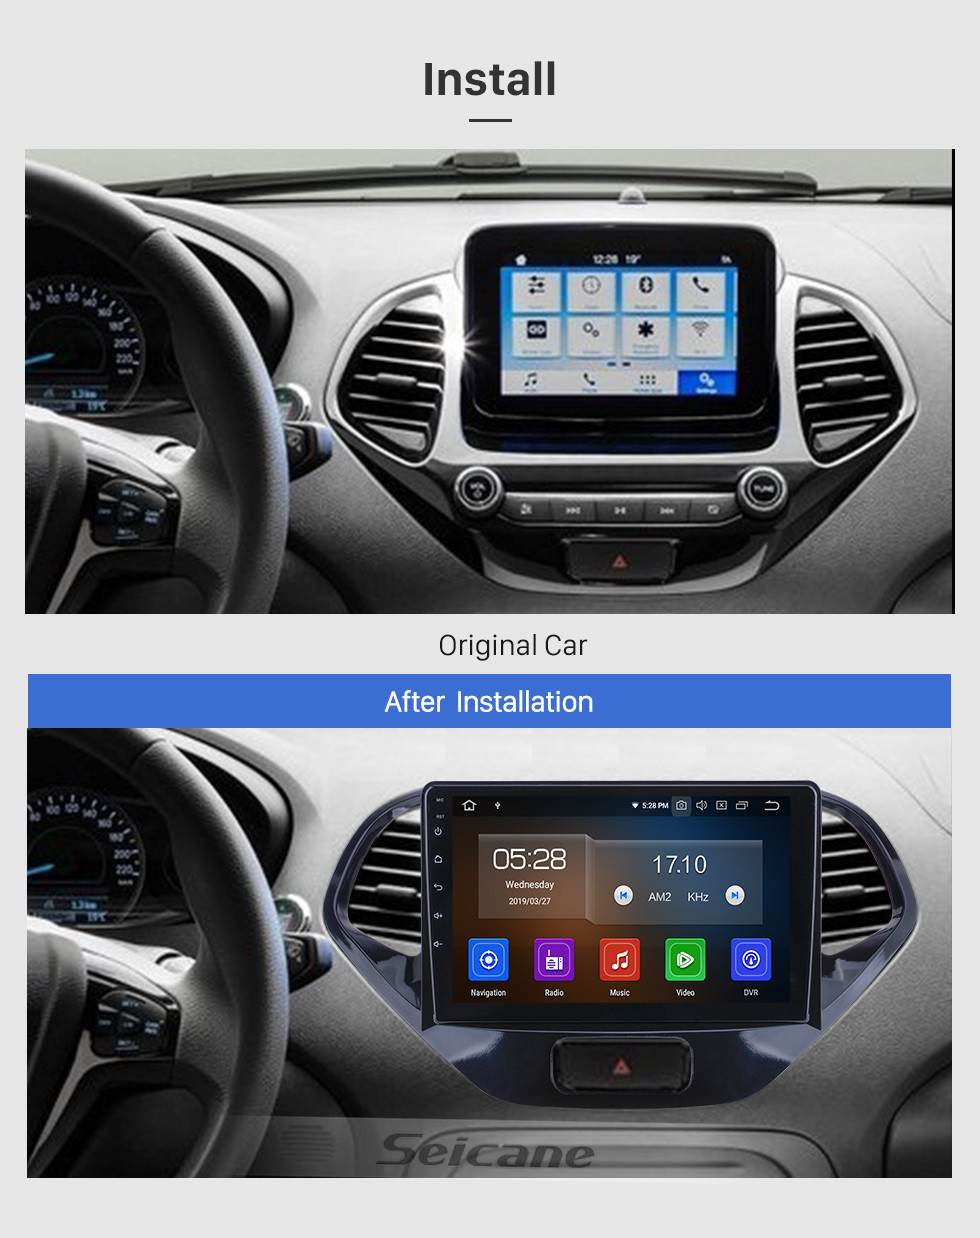 Seicane HD Touchscreen 2015 2016 2017 2018 Ford Figo Radio Android 10.0 9 inch GPS Navigation Bluetooth AUX Carplay support Backup camera